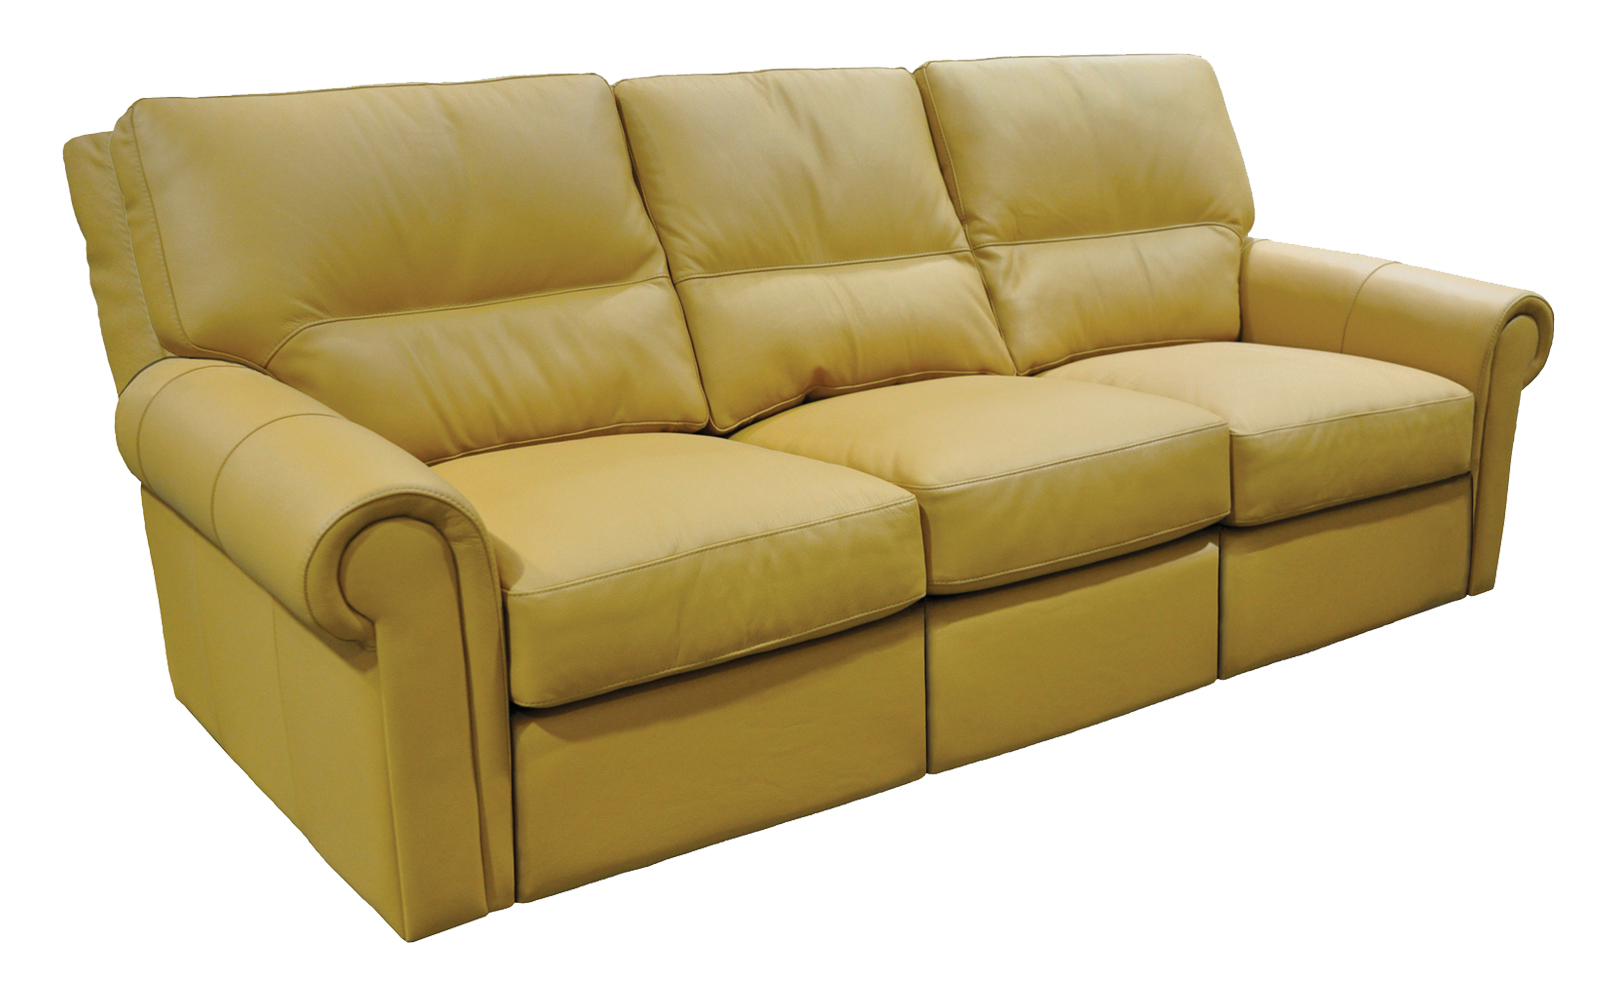 theater seating sofa sleeper rent to own riley available  arizona leather interiors